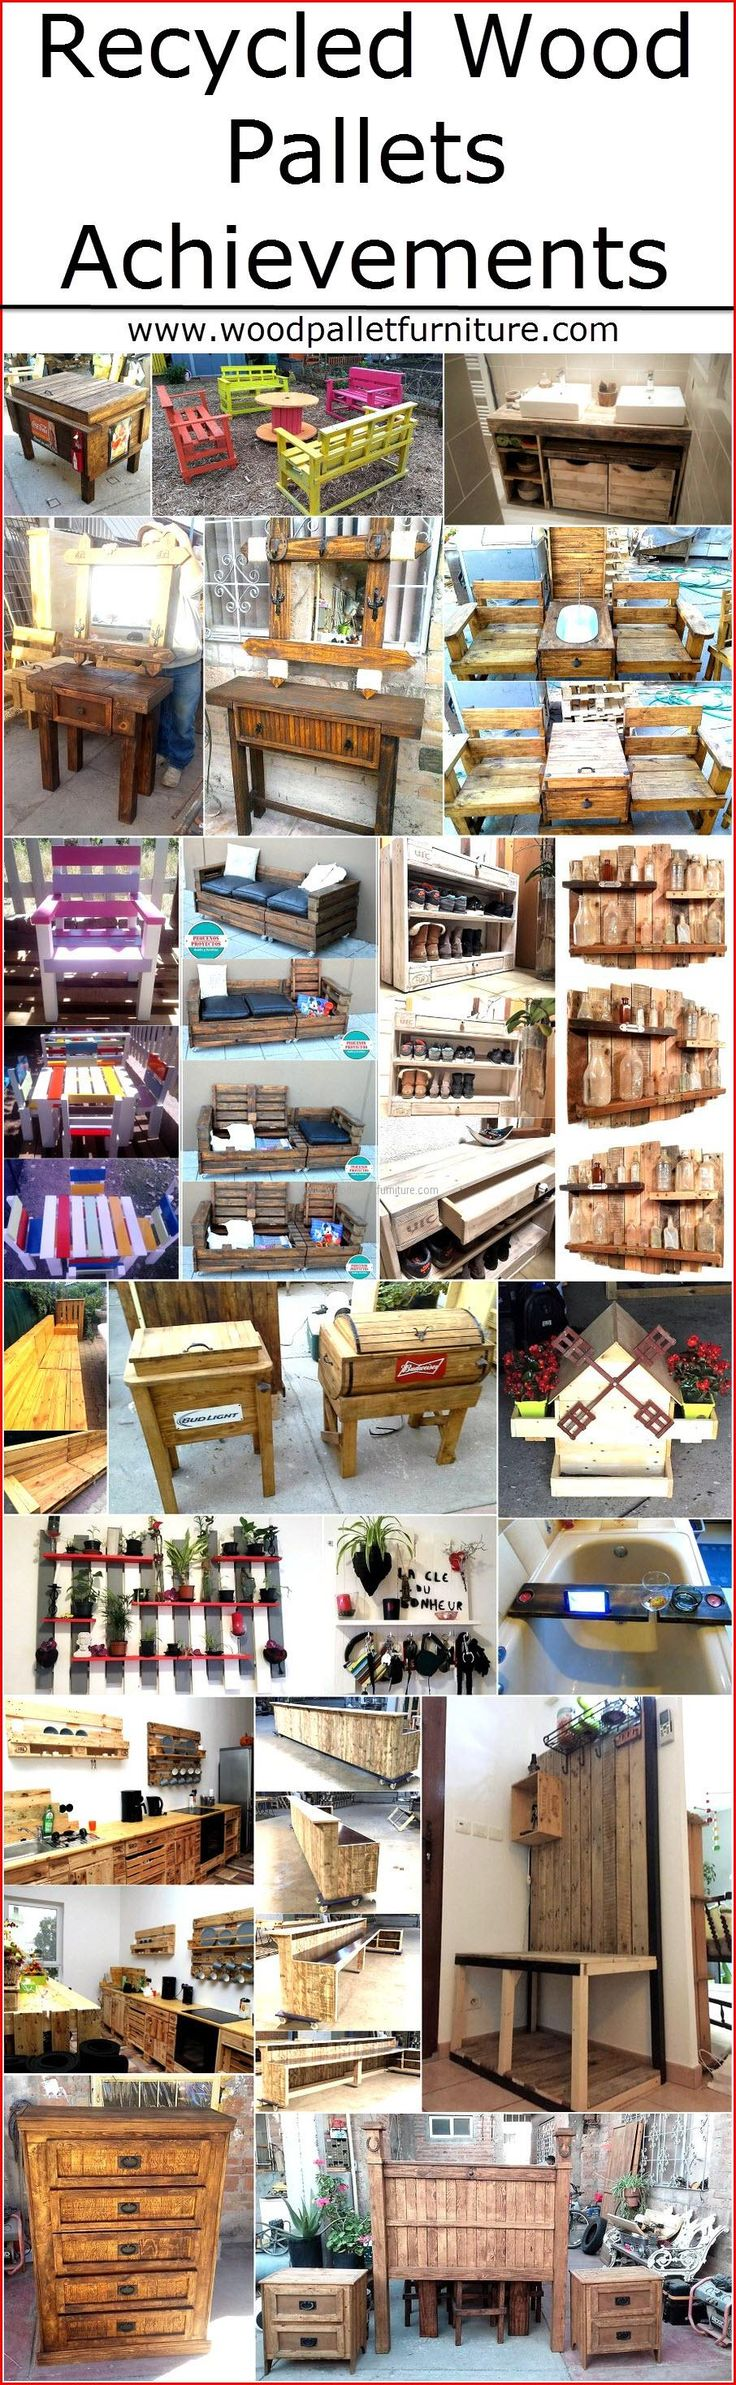 Recycled Wooden Pallets Achievements